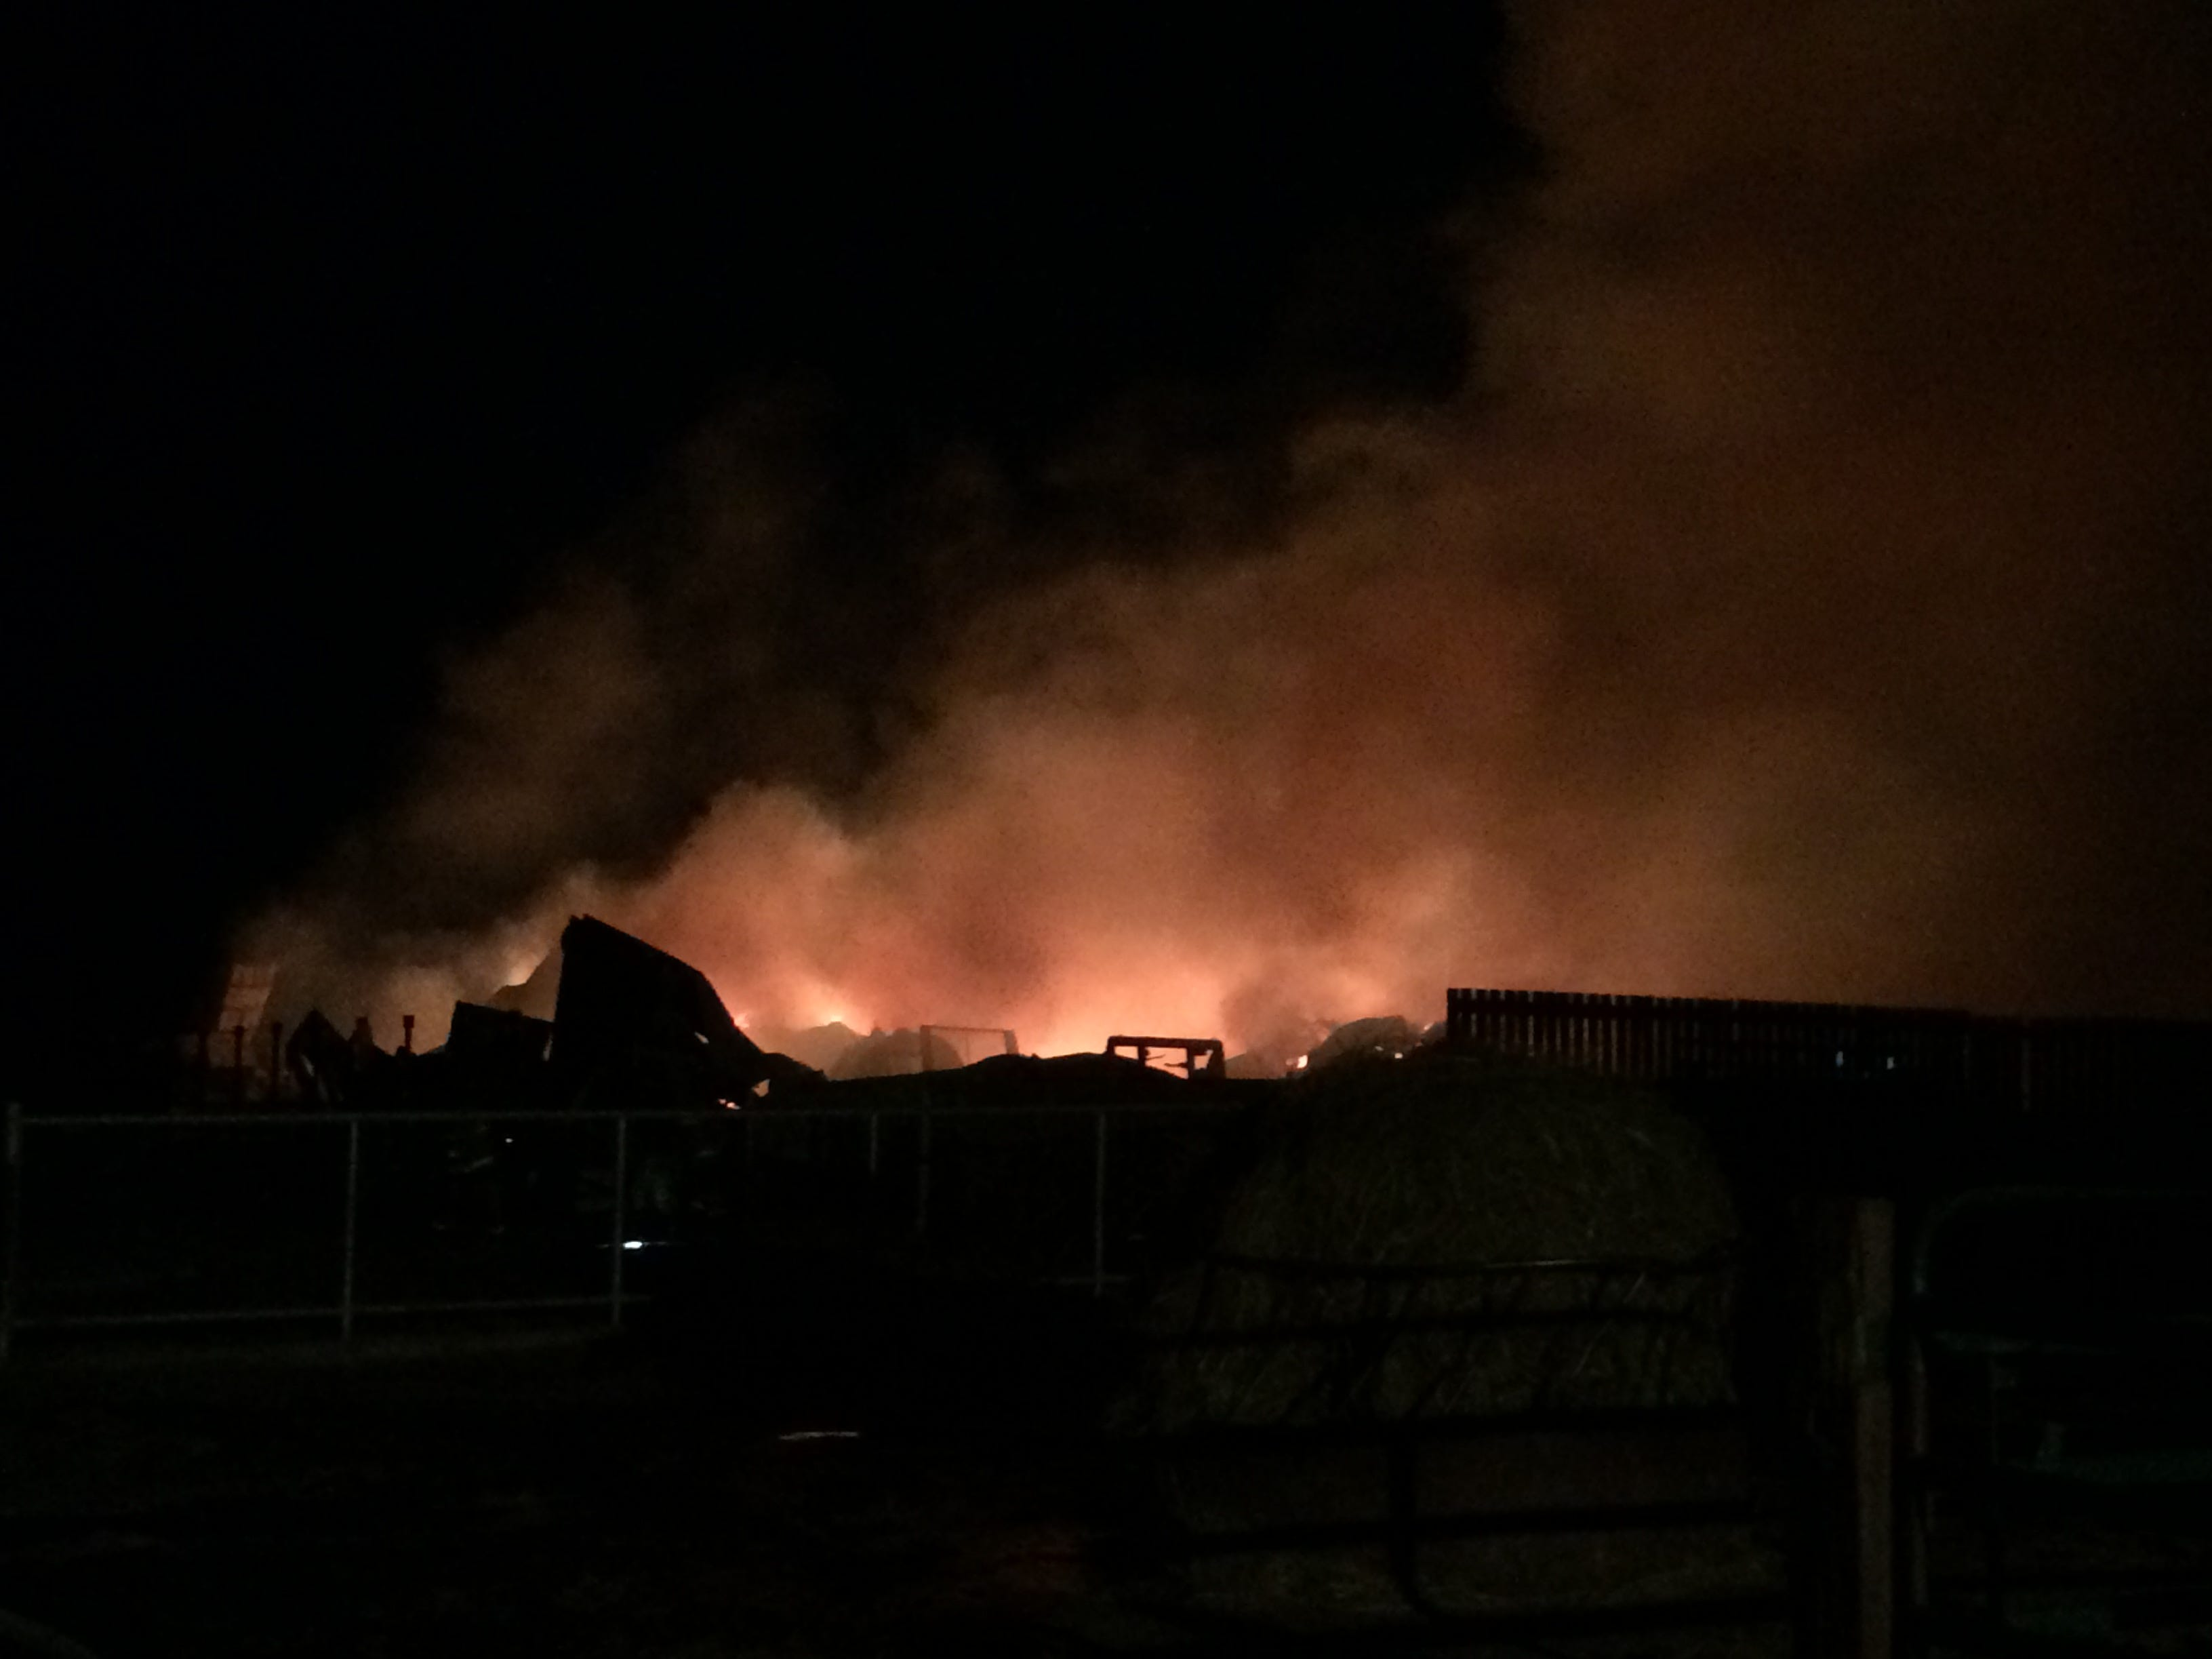 The remnants of a cattle barn burn before dawn Wednesday at the Gerber farm across Ind. 227 from Richmond Municipal Airport.